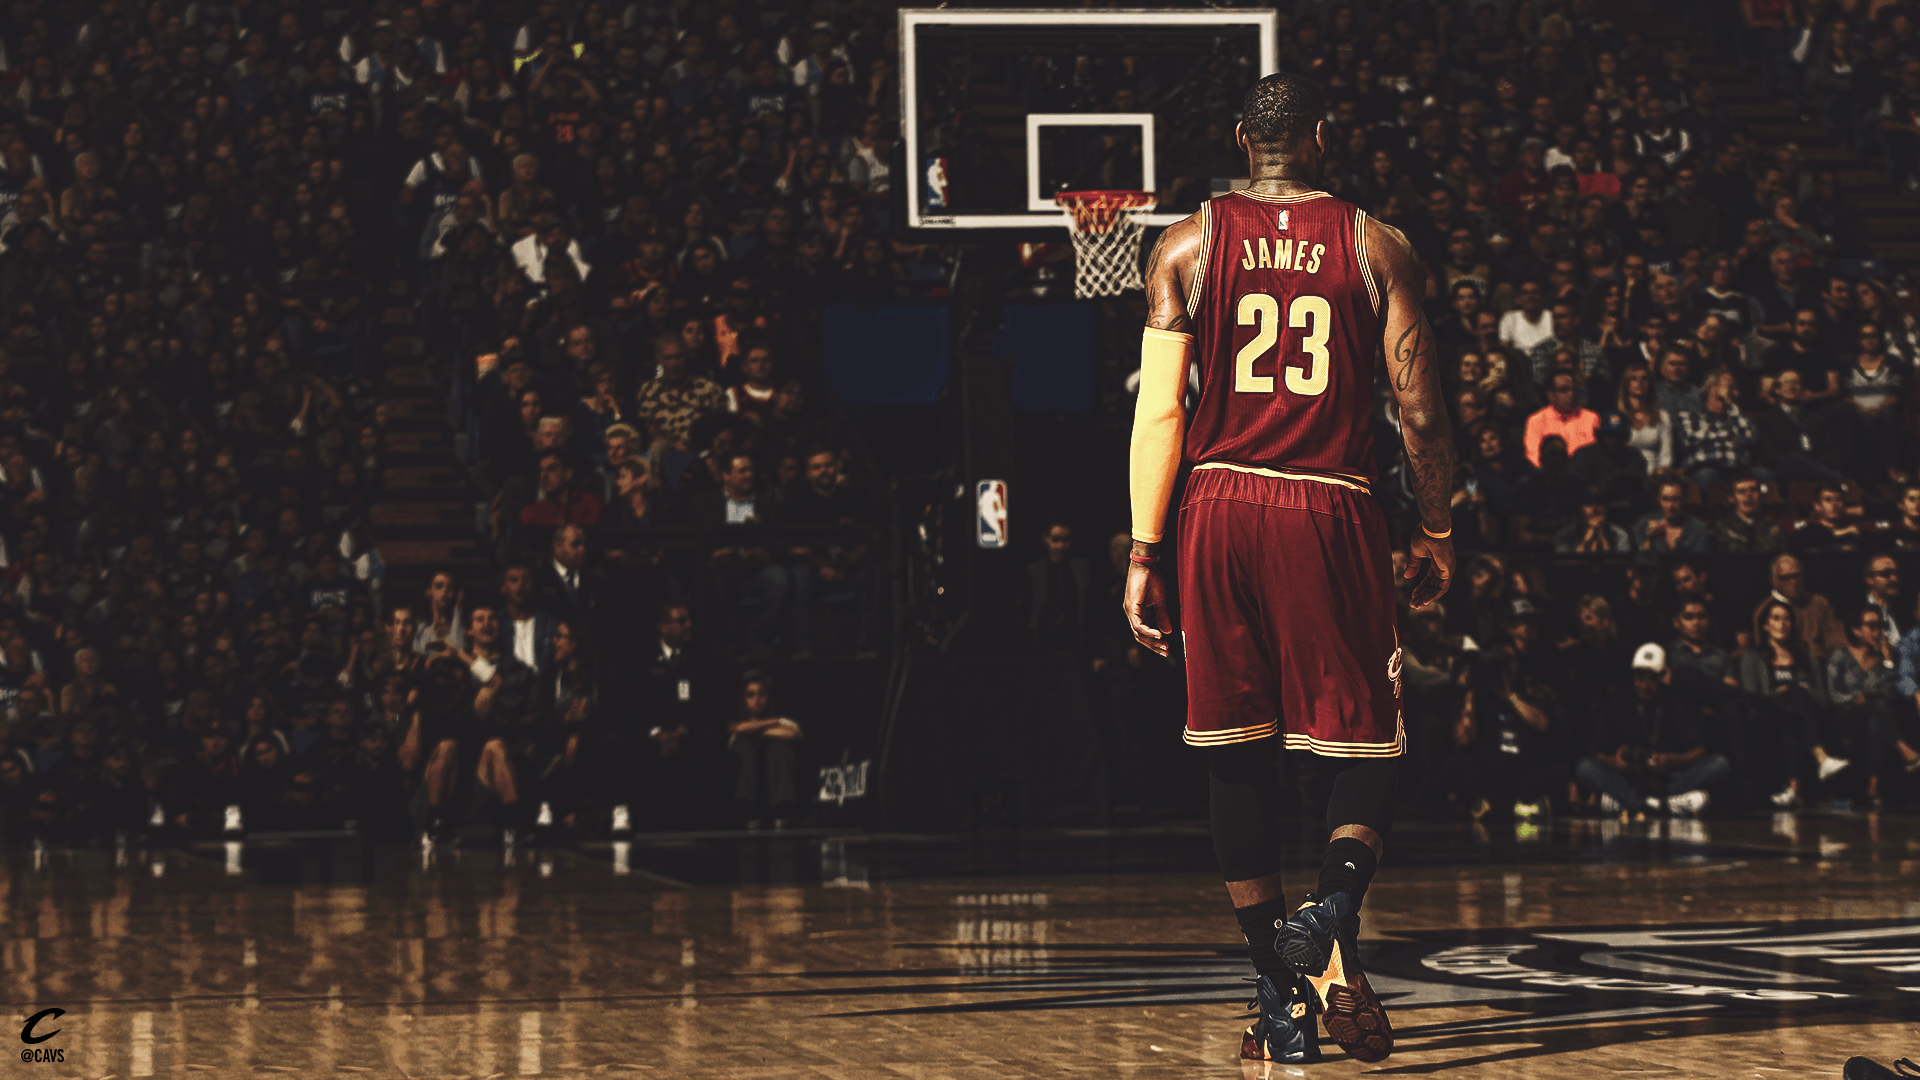 LeBron James Wallpapers ID914671